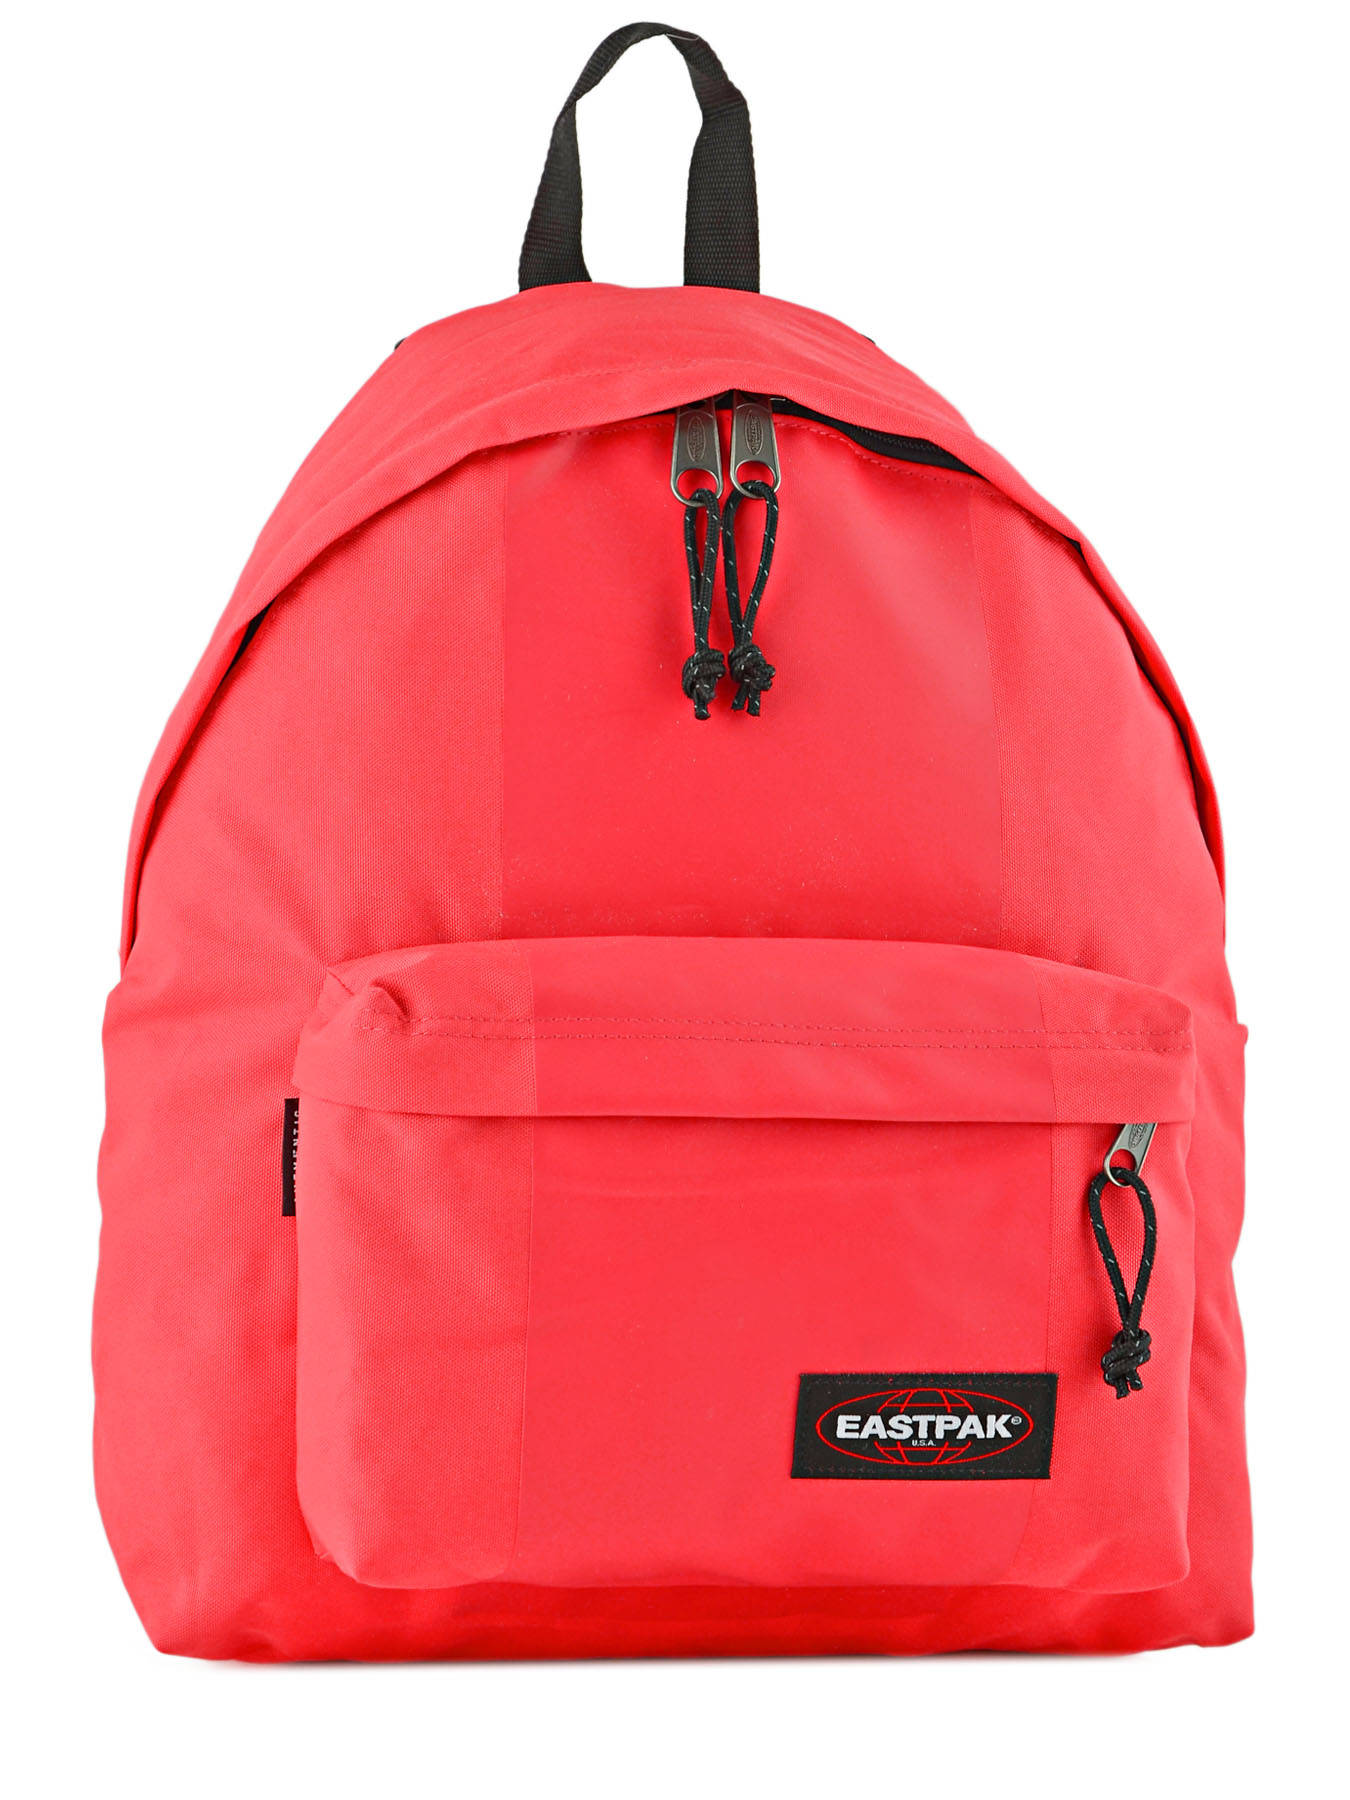 Rugzak Eastpak Rugzak Eastpak Authentic Authentic Op Edisac Be